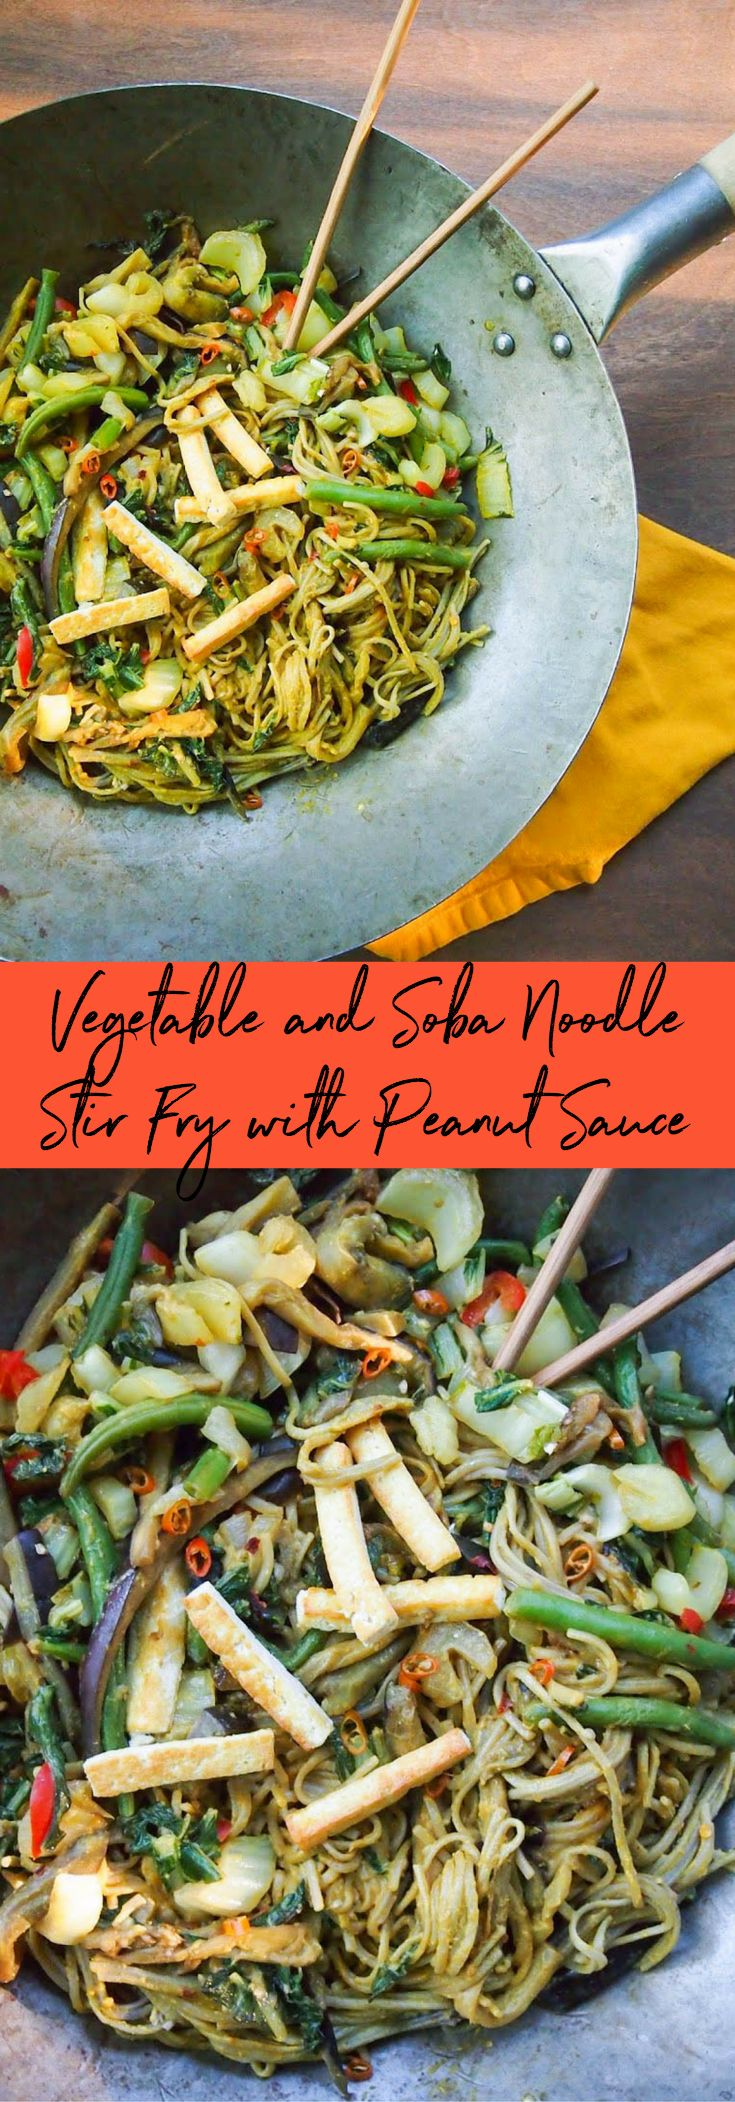 Vegetable and Soba Noodle Stir Fry with Peanut Sauce — Rachael Hartley Nutrition